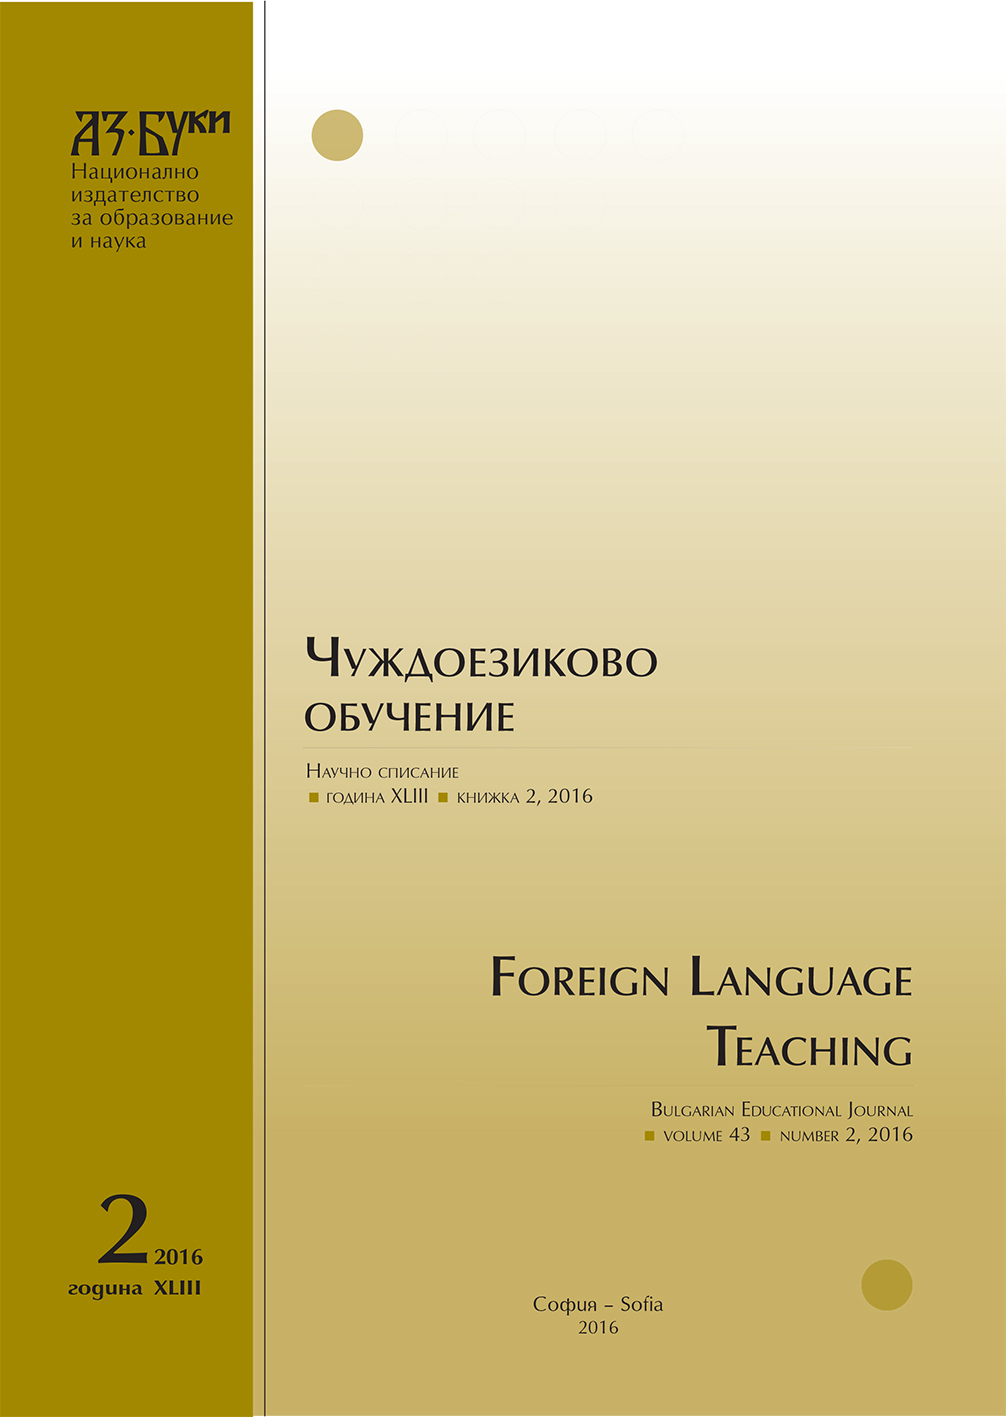 Comparative Analysis of the Textual Competence of Bulgarian Students in English as a Foreign Language, and in Bulgarian Cover Image